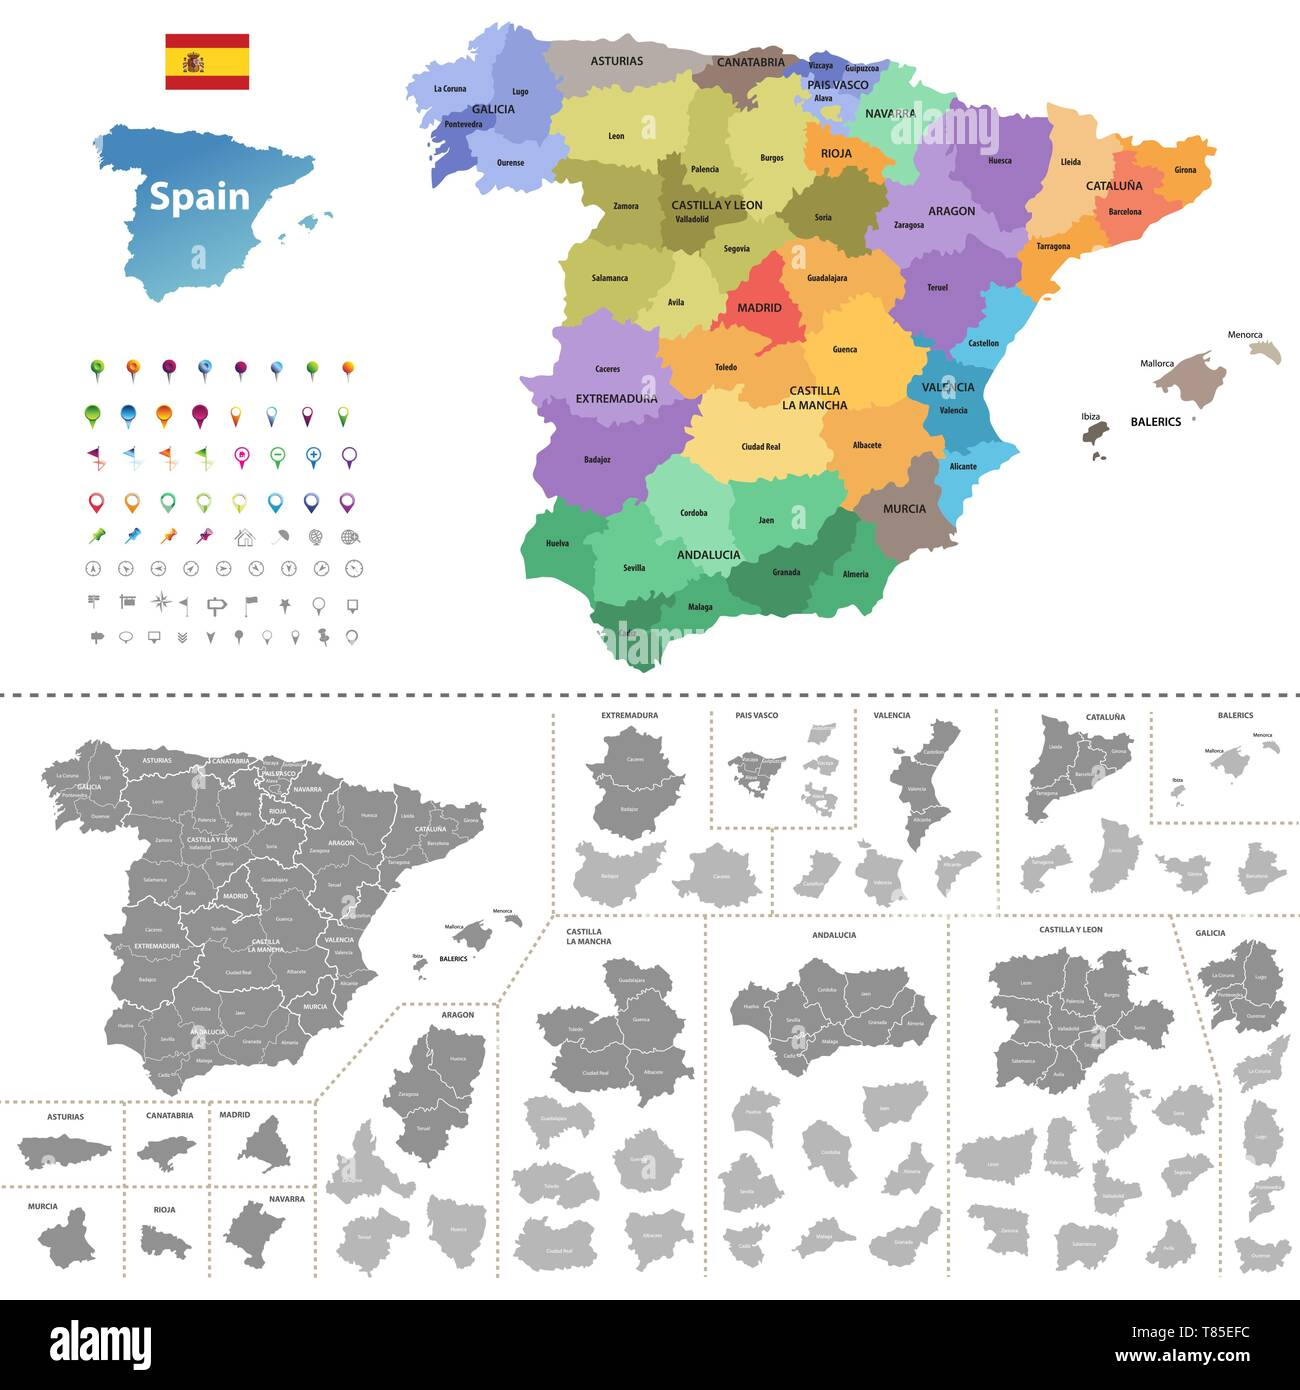 Spain high detailed vector map (colored by autonomous communities) with administrative divisions Stock Vector